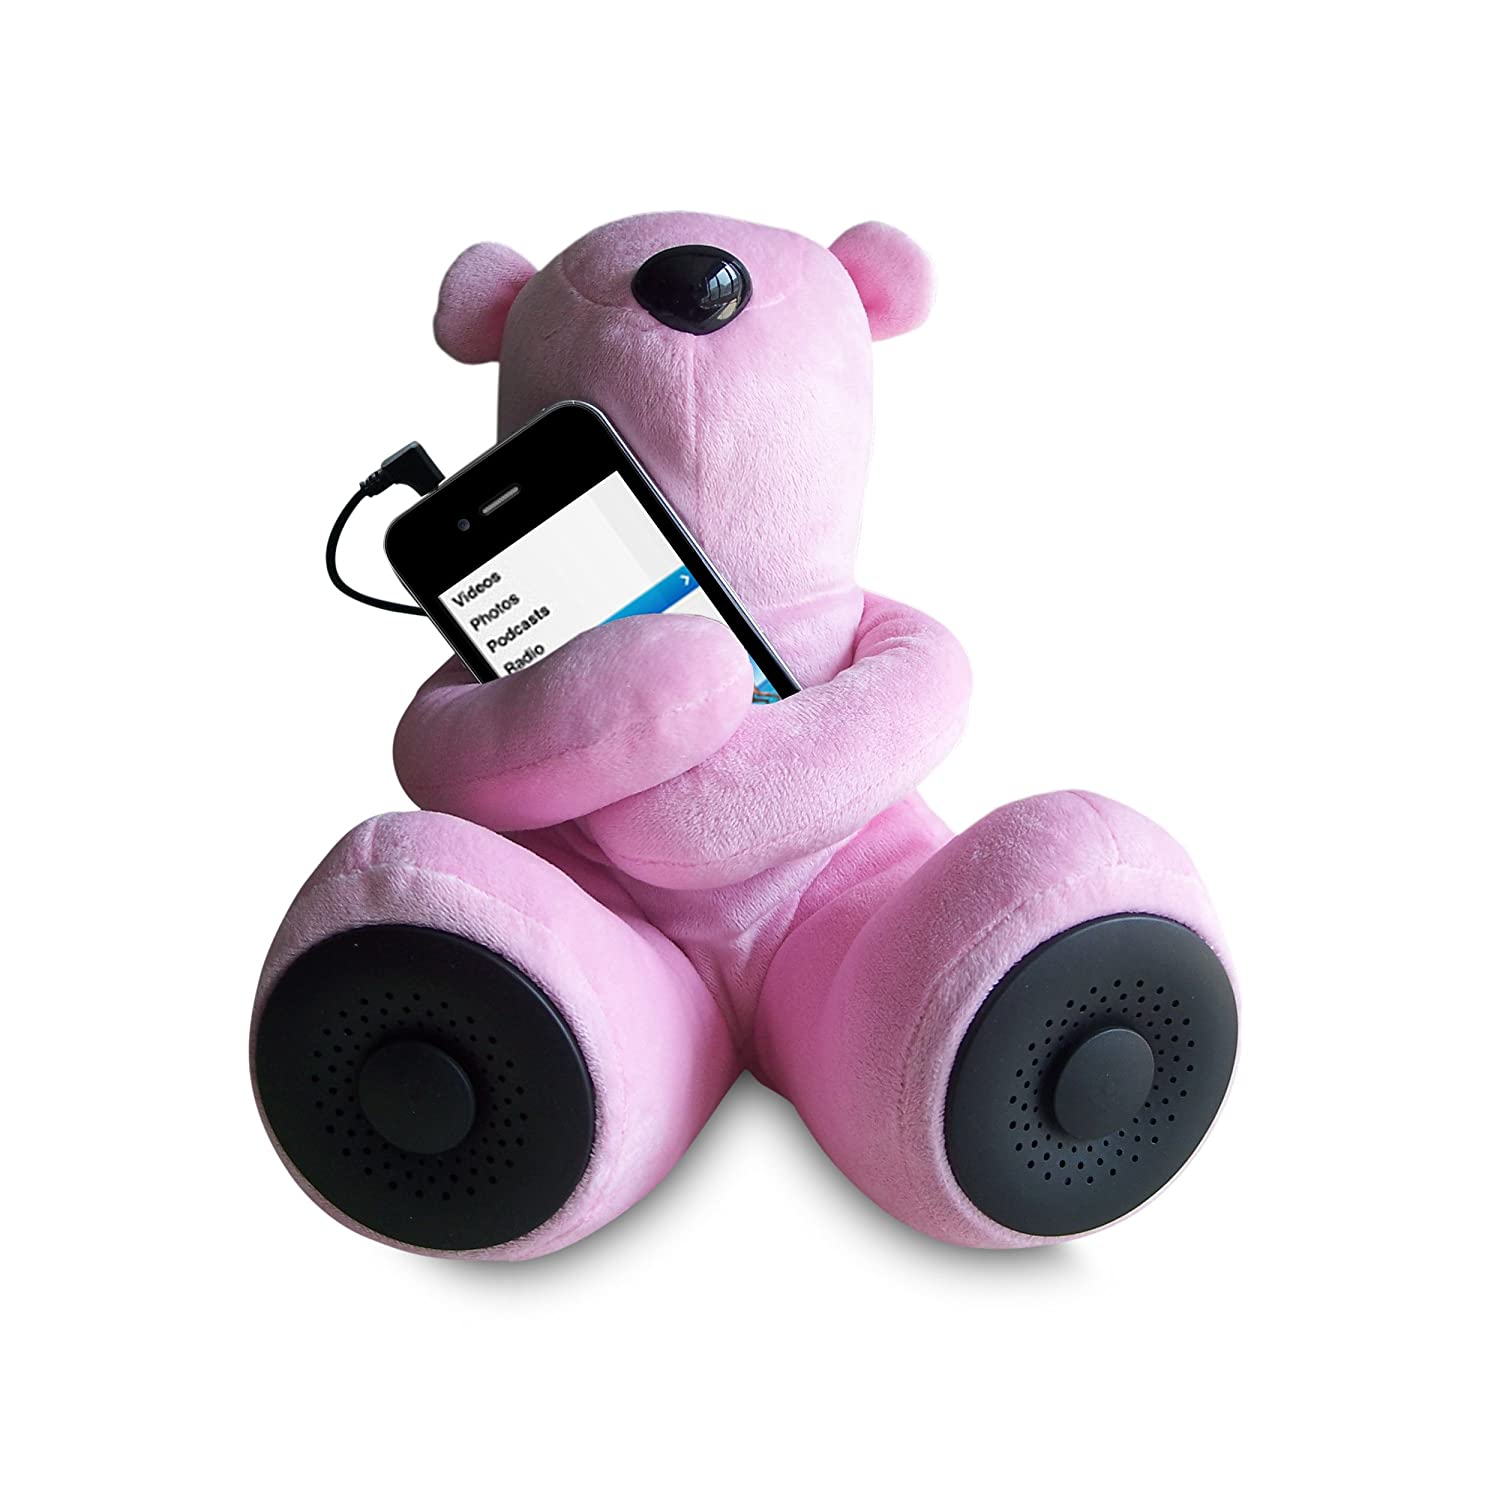 Sungale S-T1 Portable Teddy Speaker For iPod MP3 iPhone Pink Smartphone Media Player